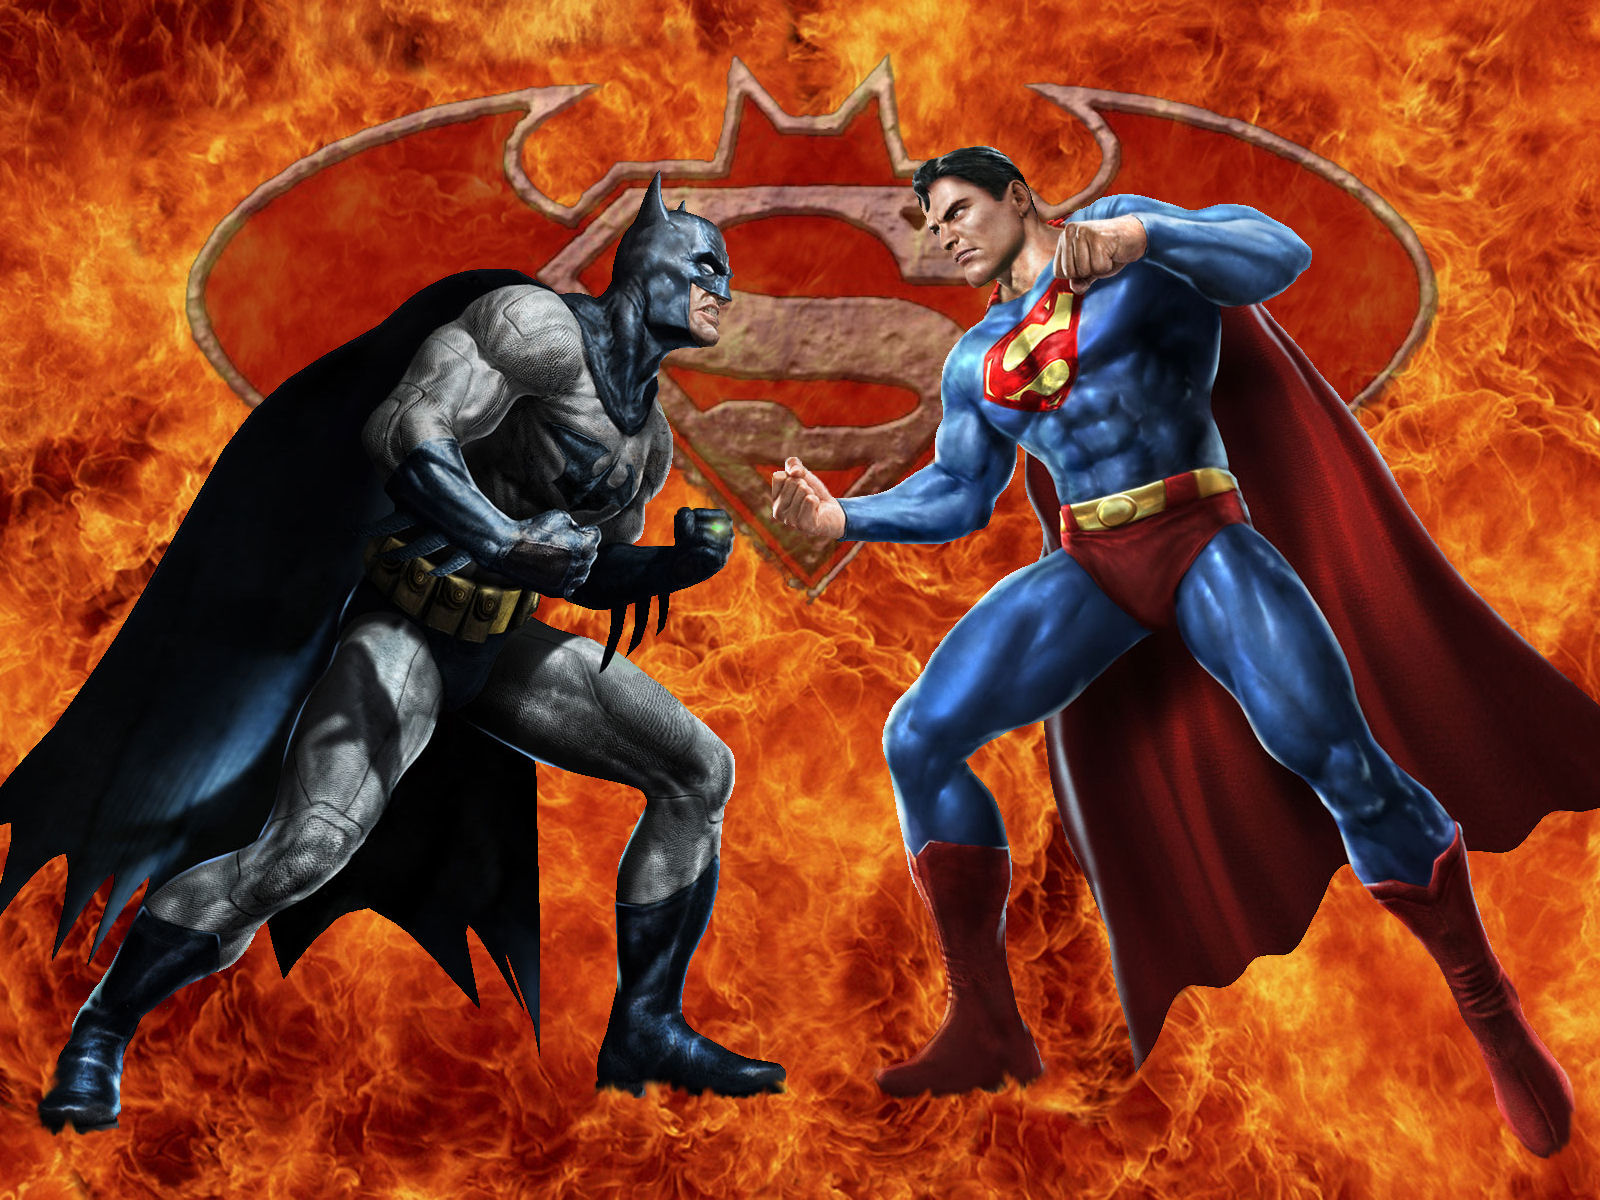 the heroes of batman and superman and the general superhero agenda